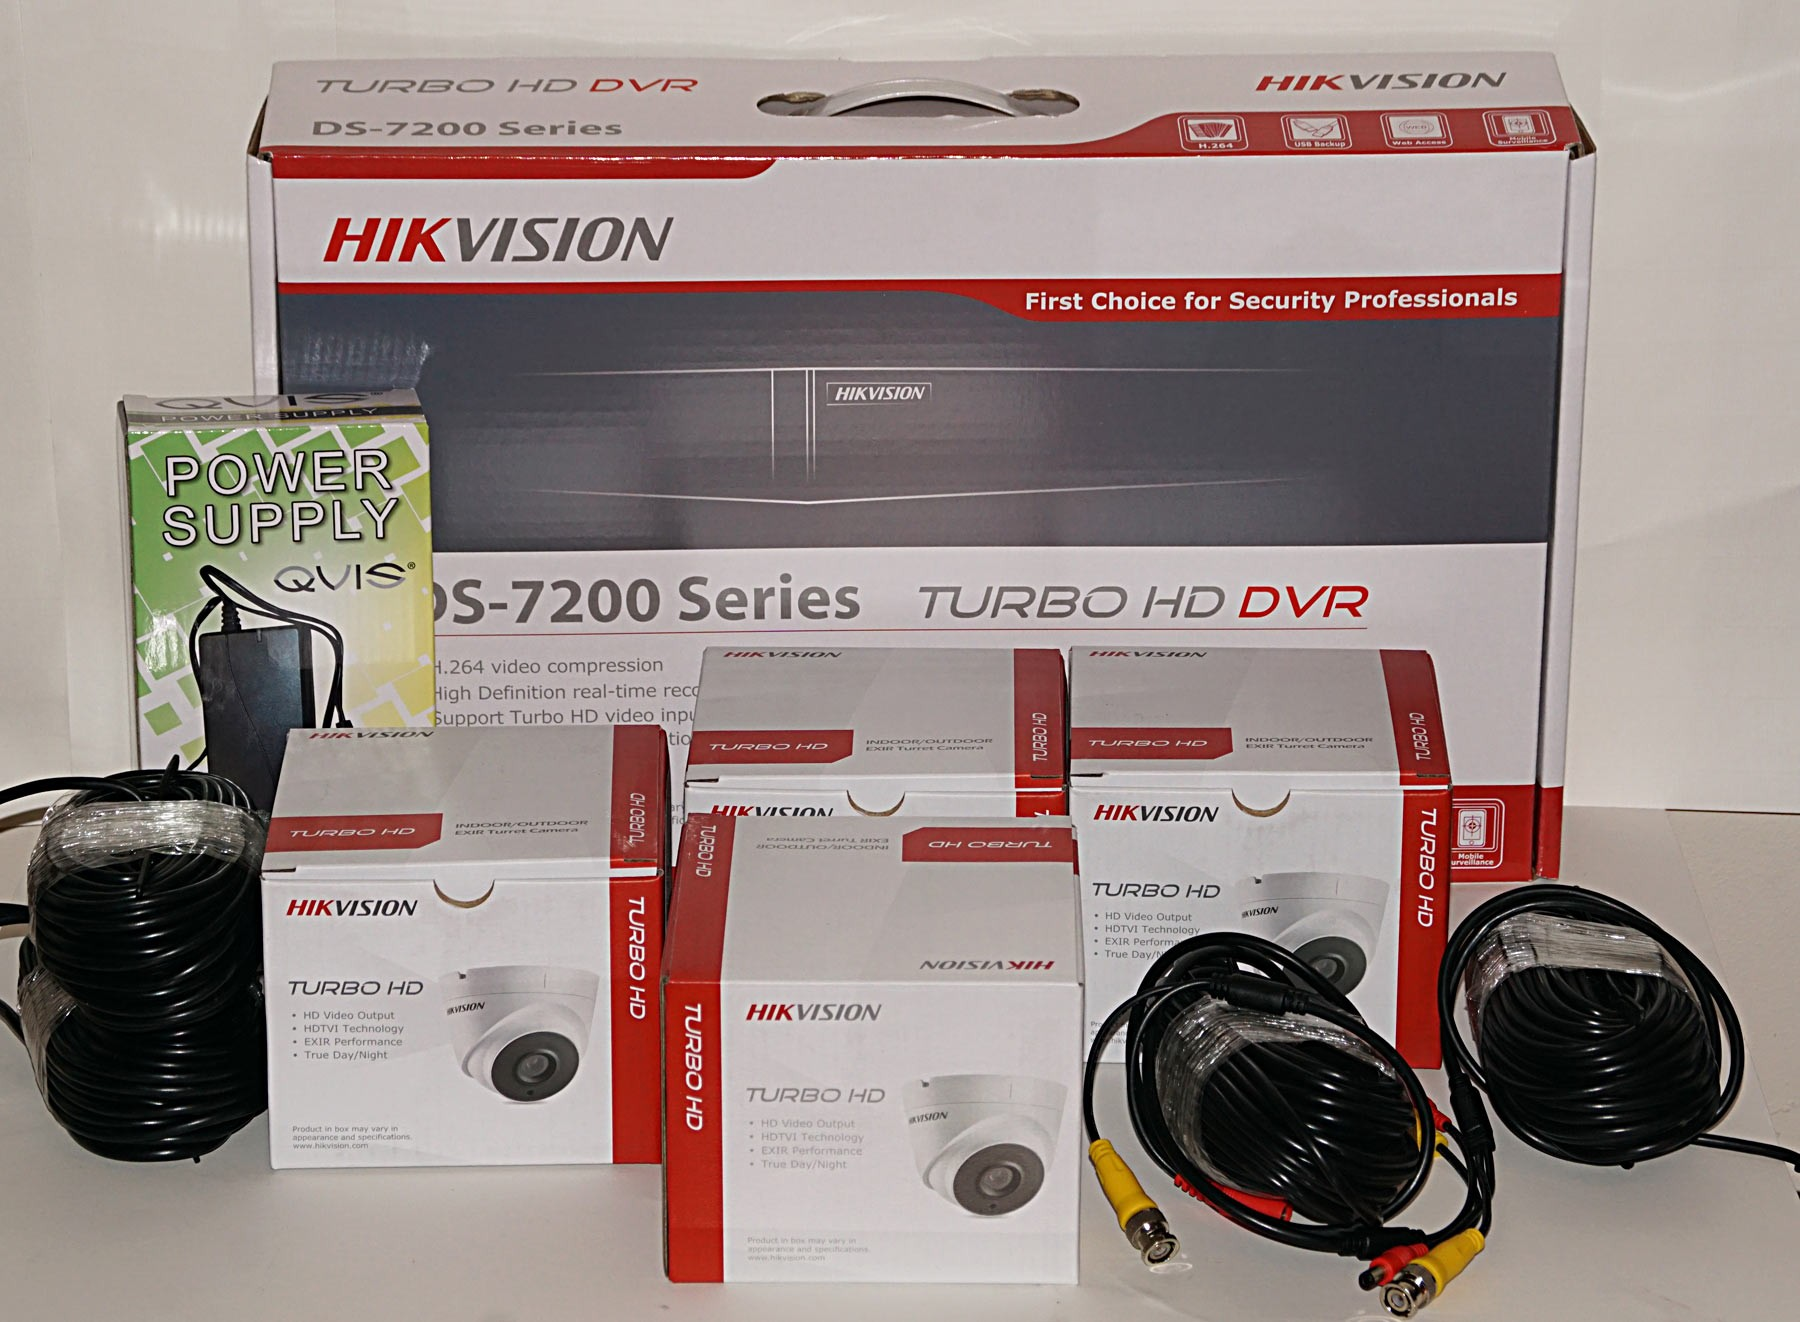 Hikvision Cctv Kit With Super Sharp Images And Fantastic